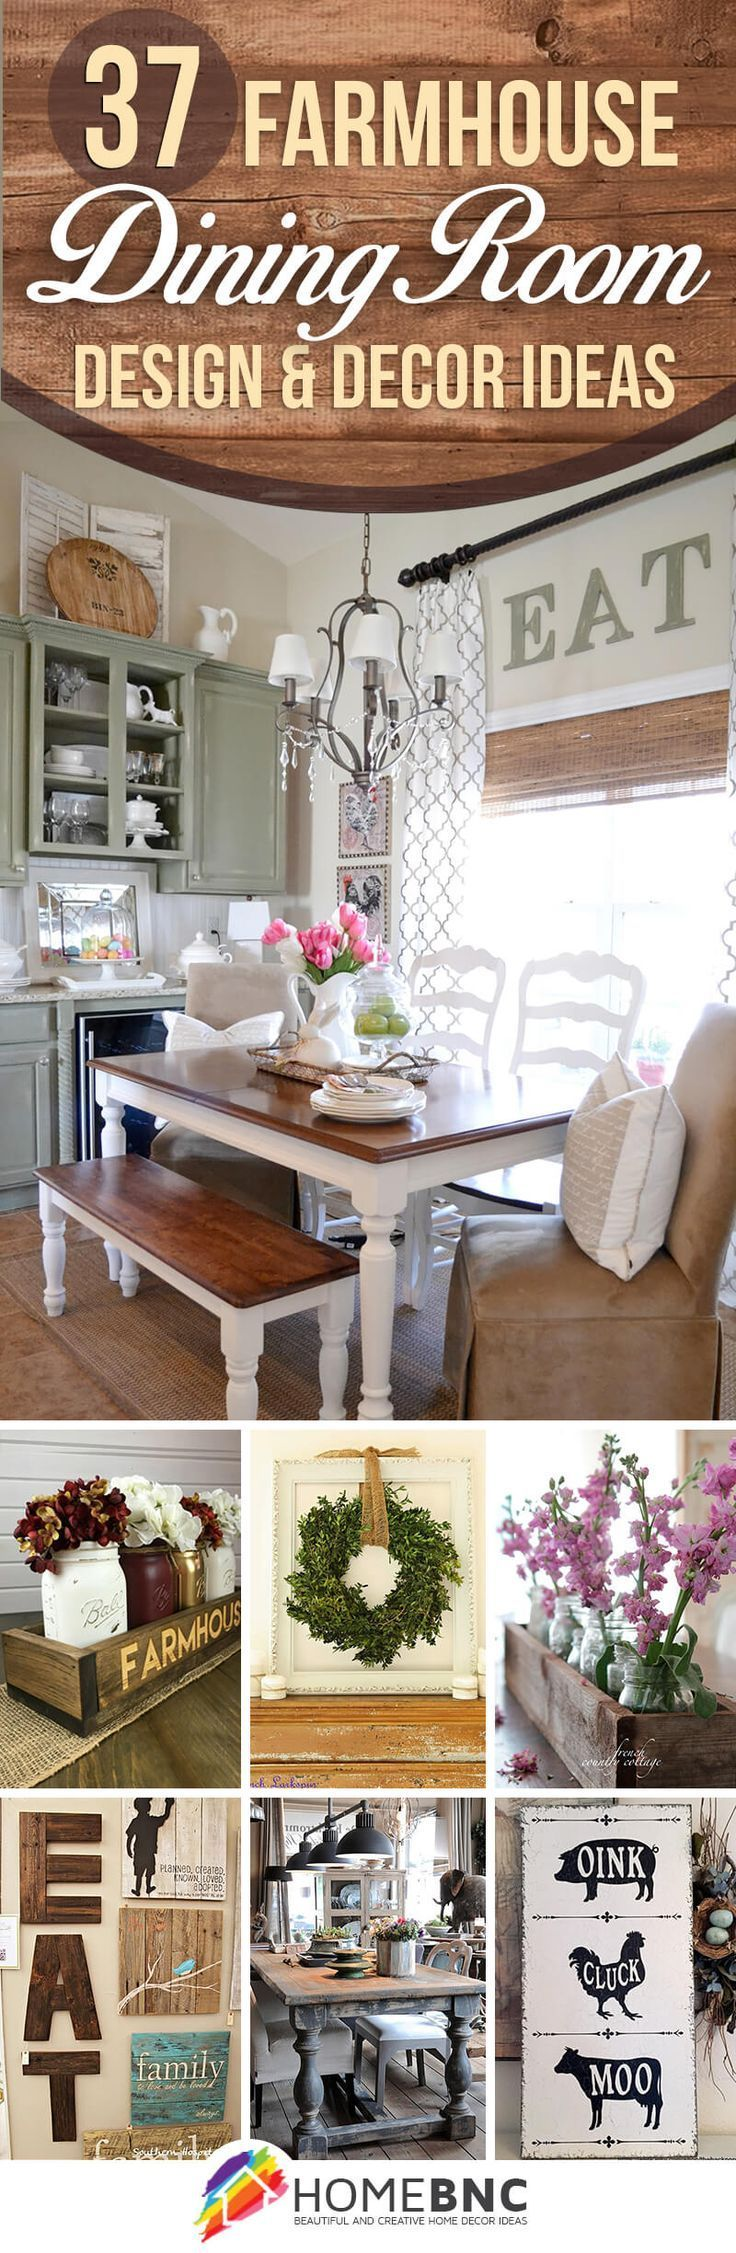 37 Timeless Farmhouse Dining Room Design Ideas That Are Simply Charming Rooms Decor Chic